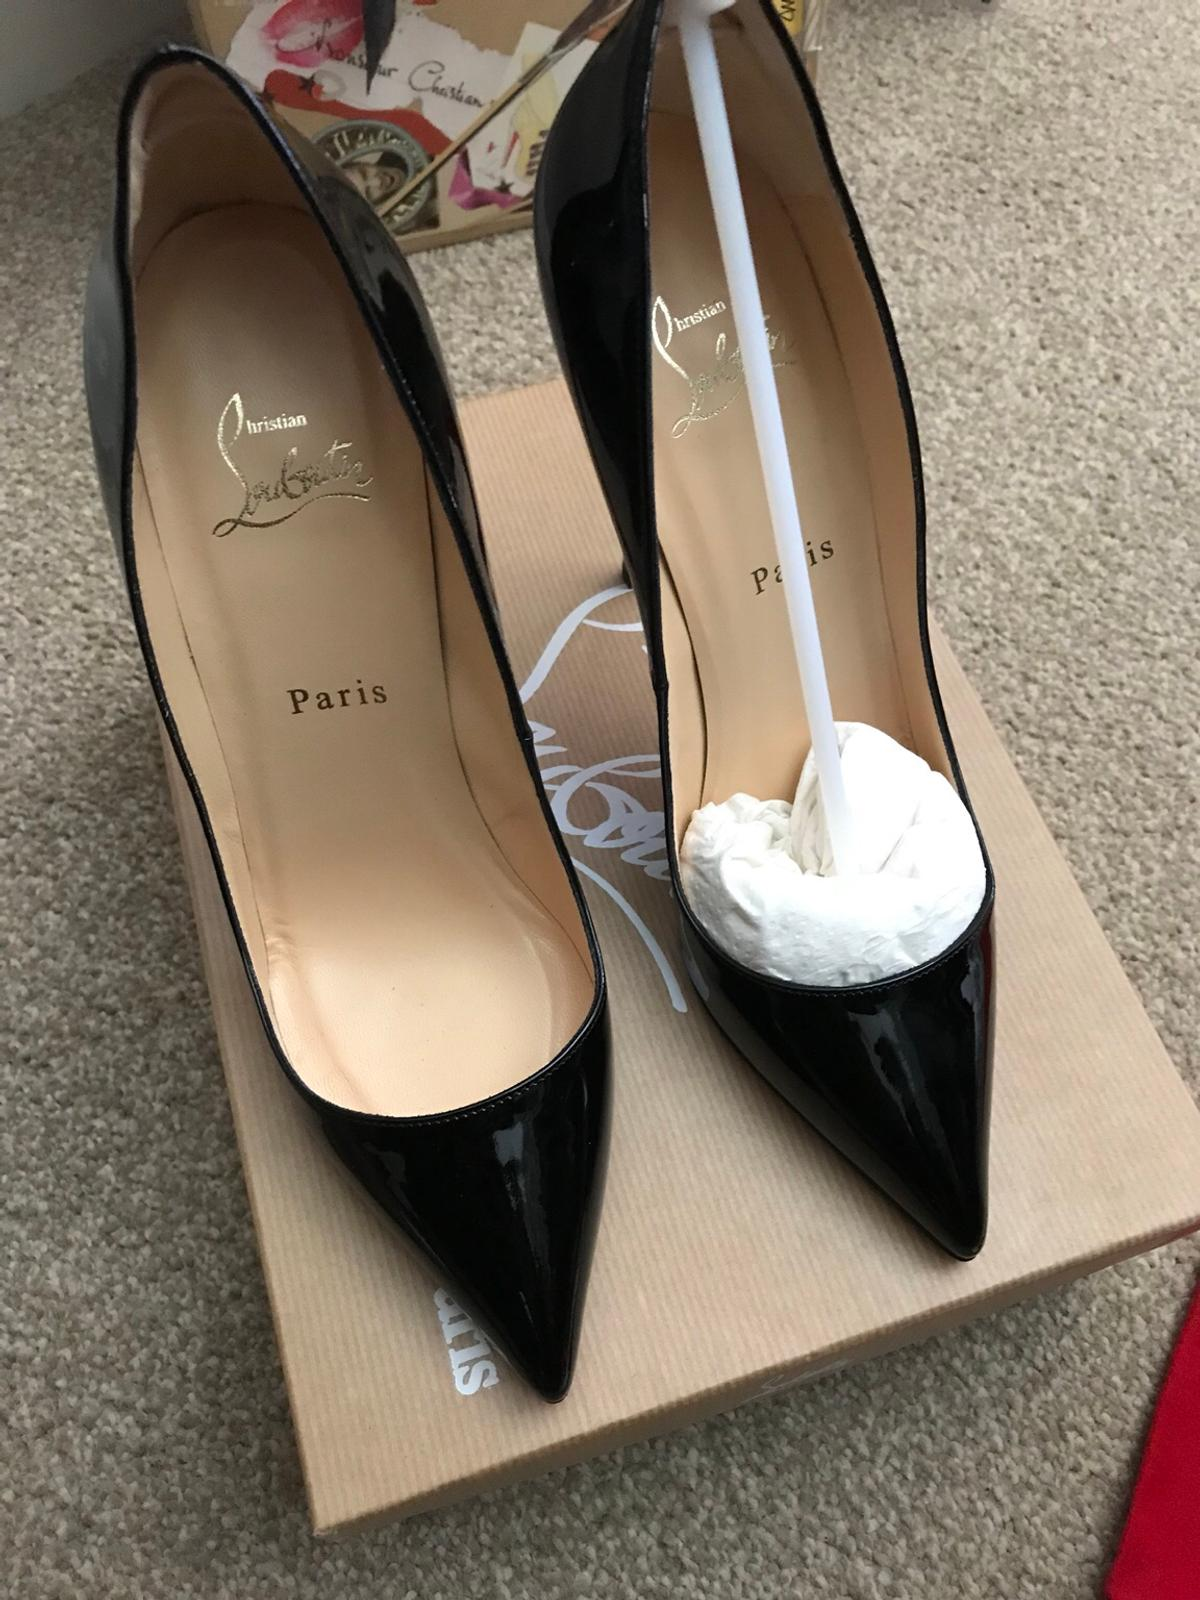 low priced 8633a 05f30 New Christian Louboutin 120mm Black Patent in EC1N Temple ...